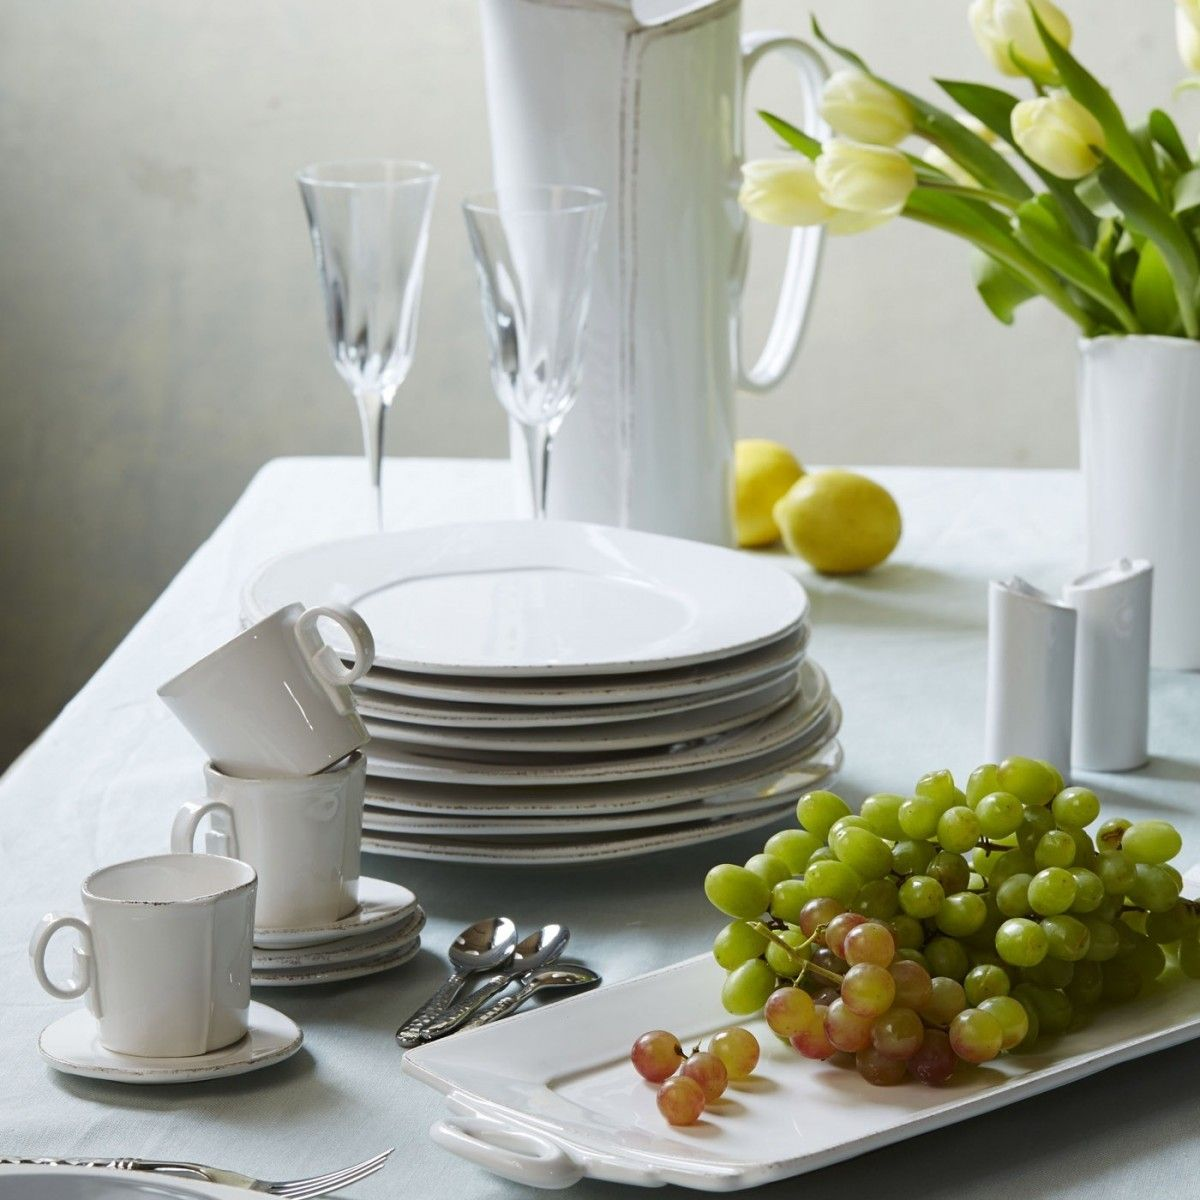 Lastra White European Dinner Plate | Dinnerware | Tabletop | VIETRI. More pieces.  #LGLimitlessDesign #Contest